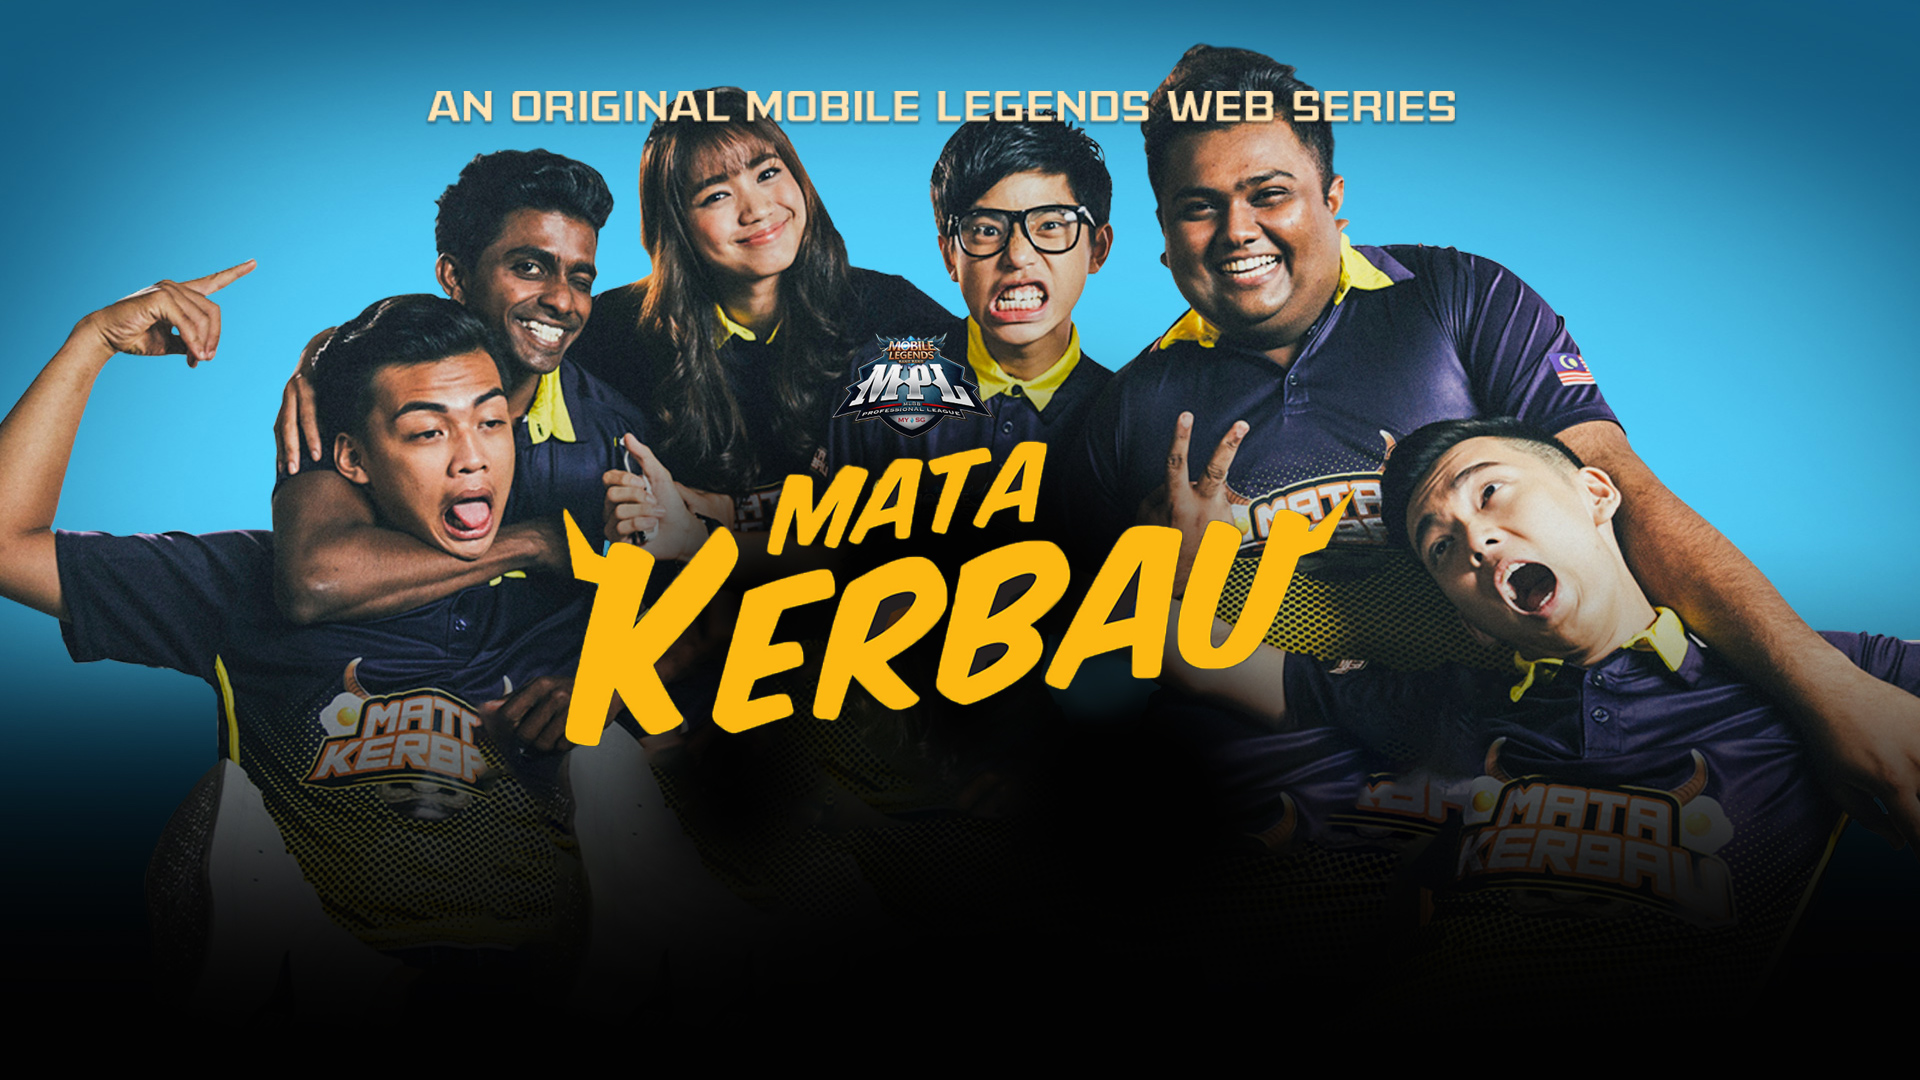 MOBILE LEGENDS WEB SERIES : MATA KERBAU